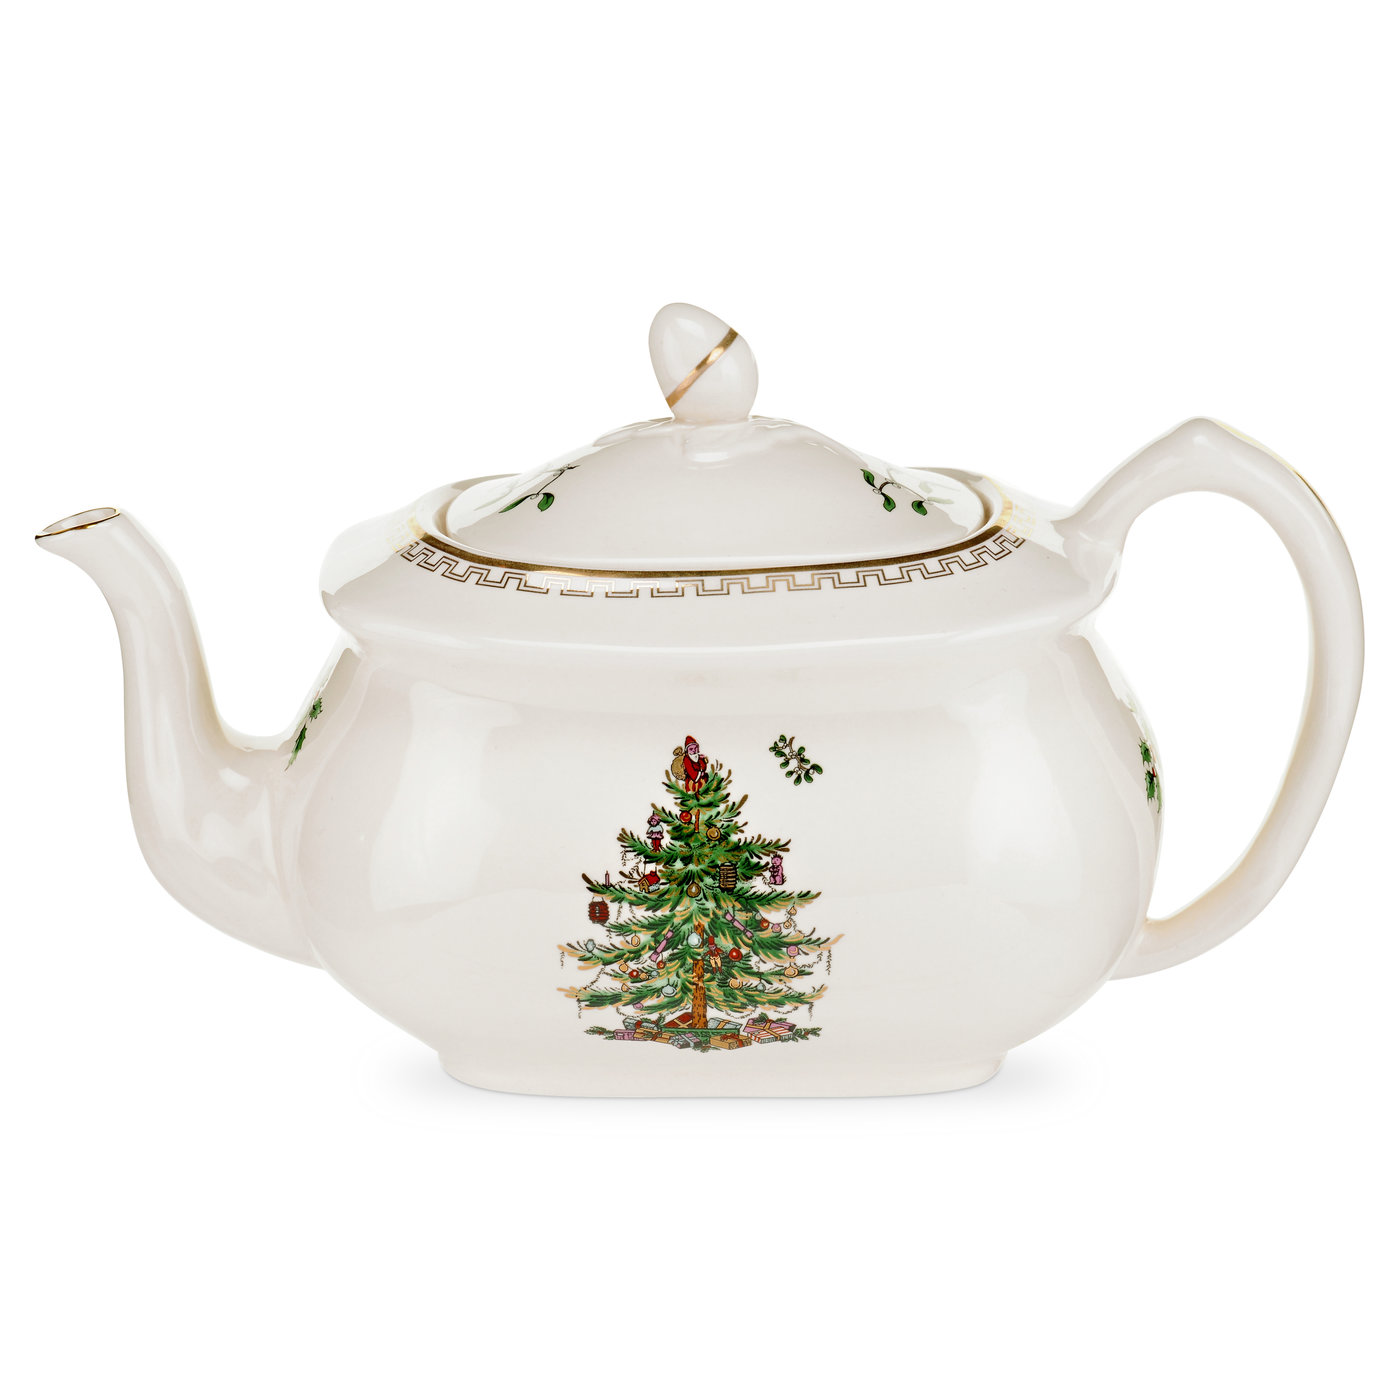 Spode Christmas Tree Gold Collection Teapot image number 0